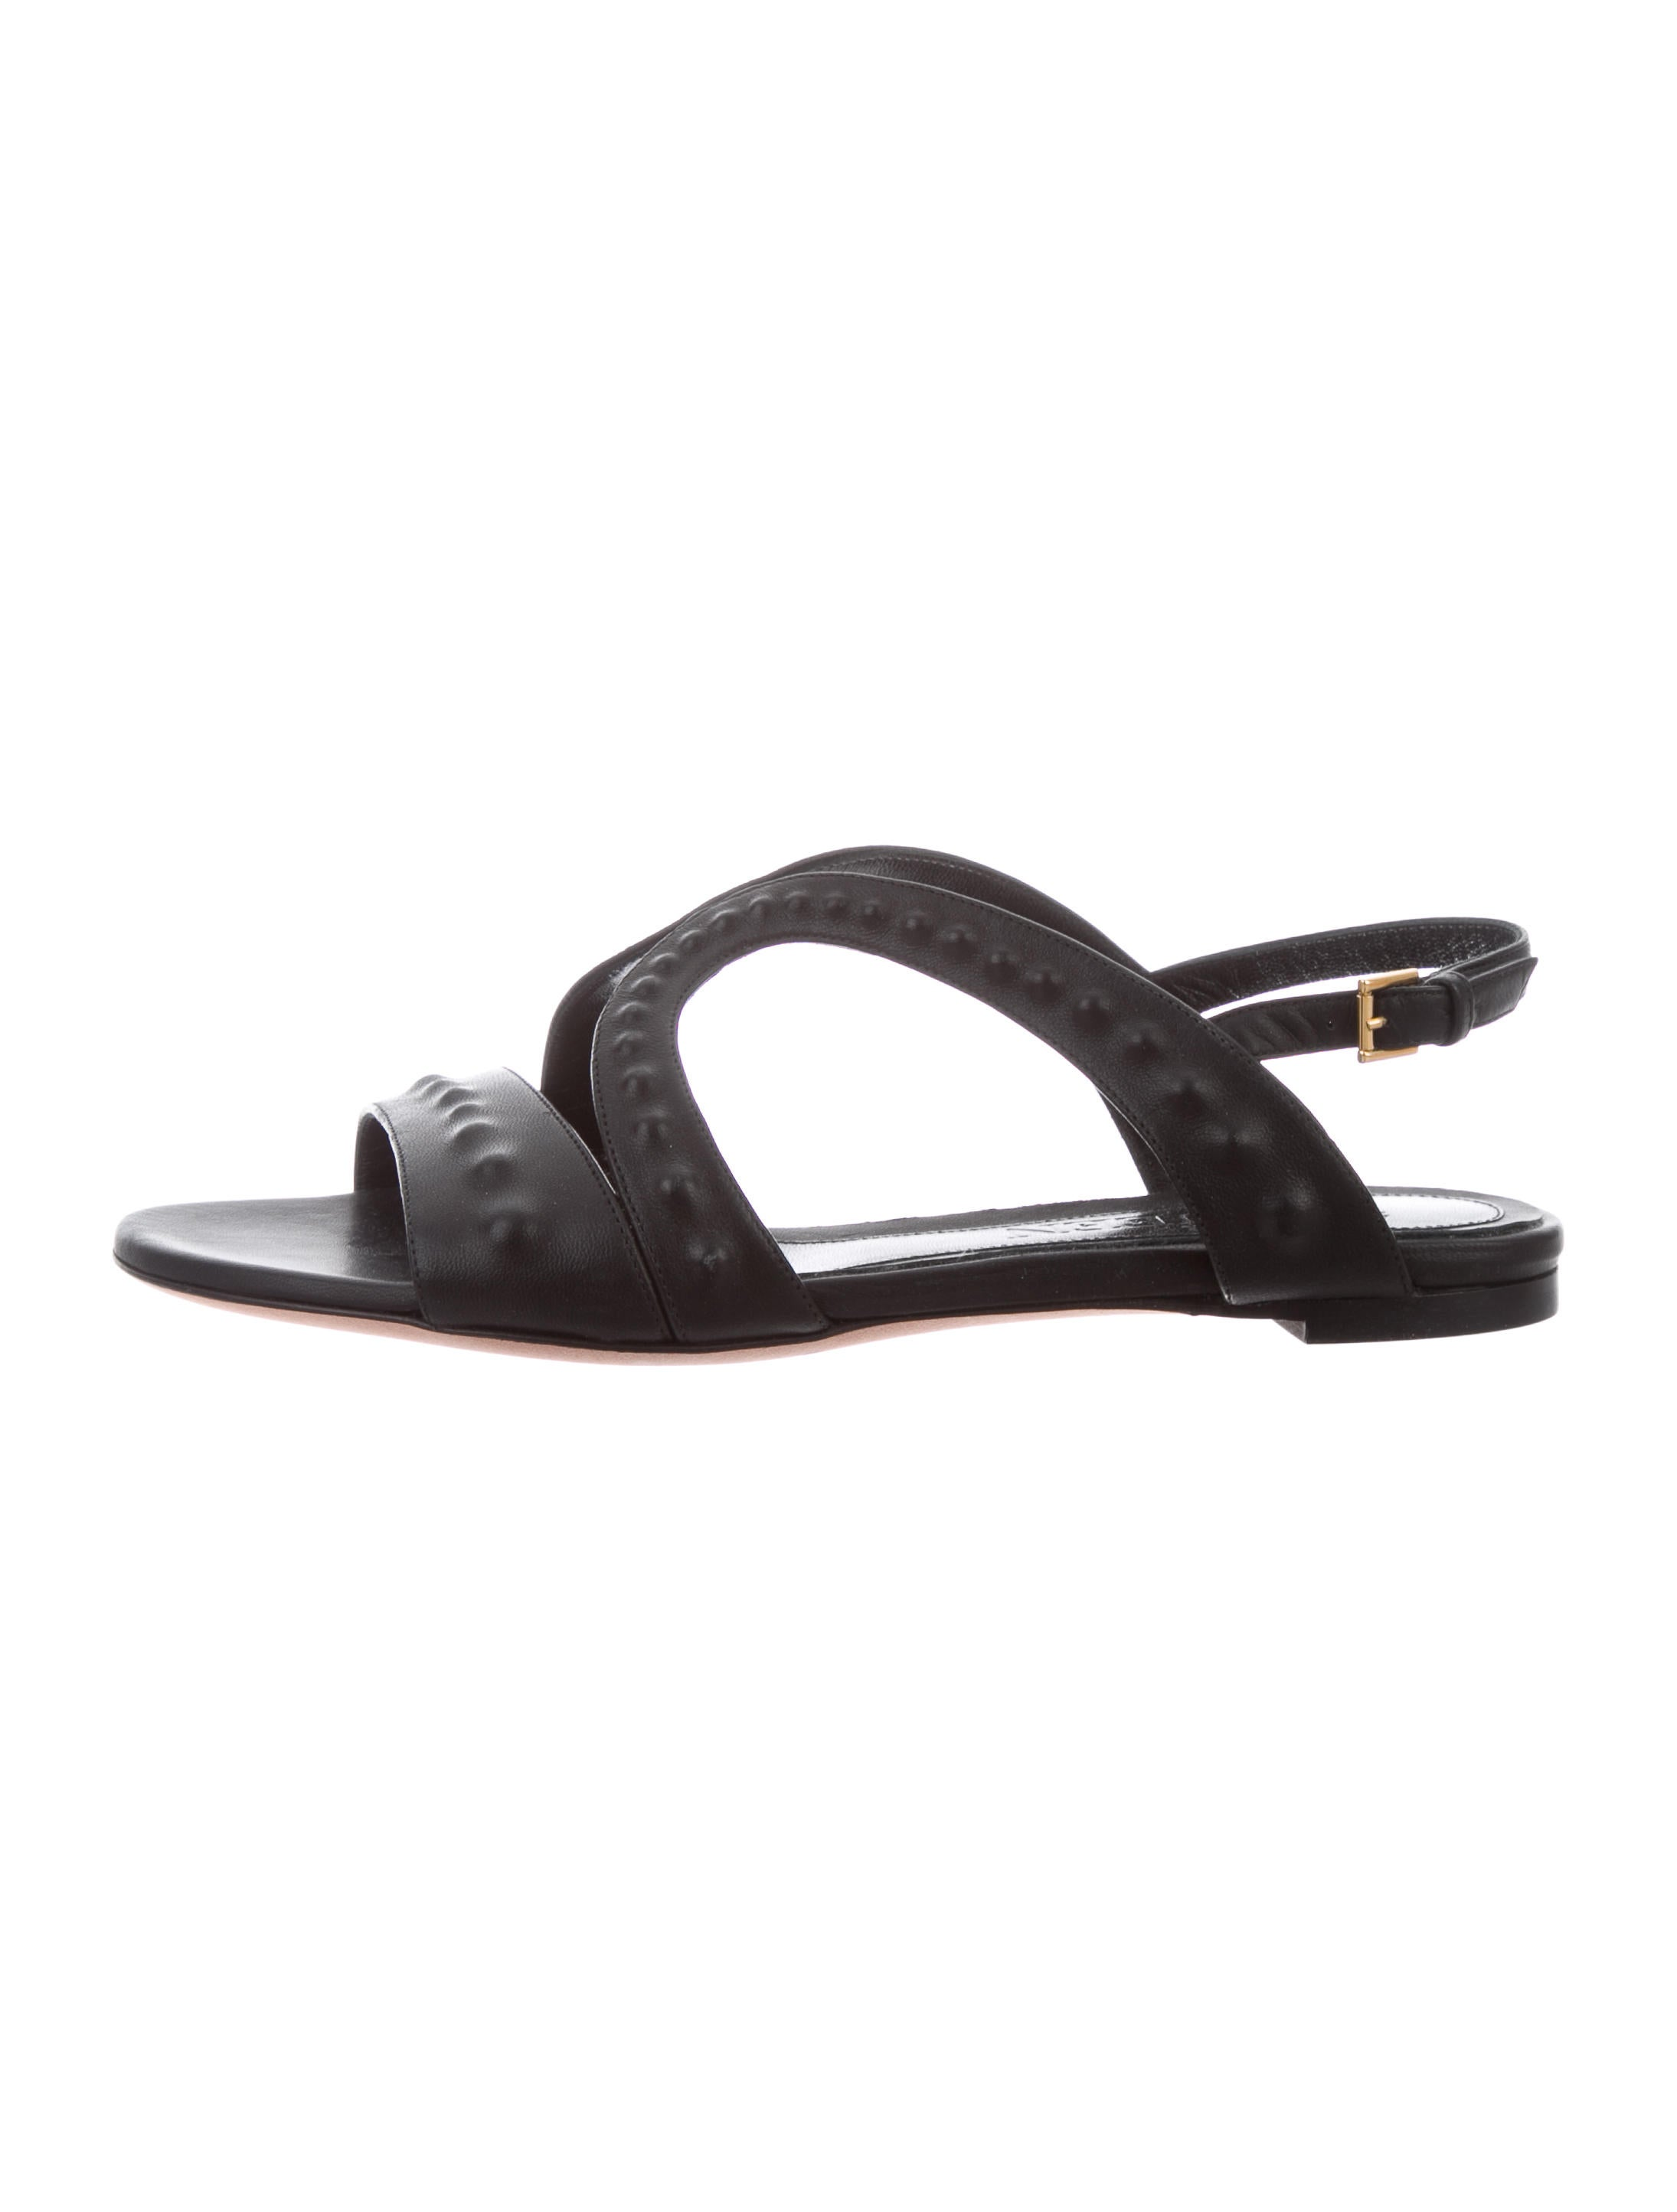 online store Alexander McQueen Leather Multistrap Sandals w/ Tags 2015 online really cheap visa payment cheap online outlet store Locations BM9hRYQpi